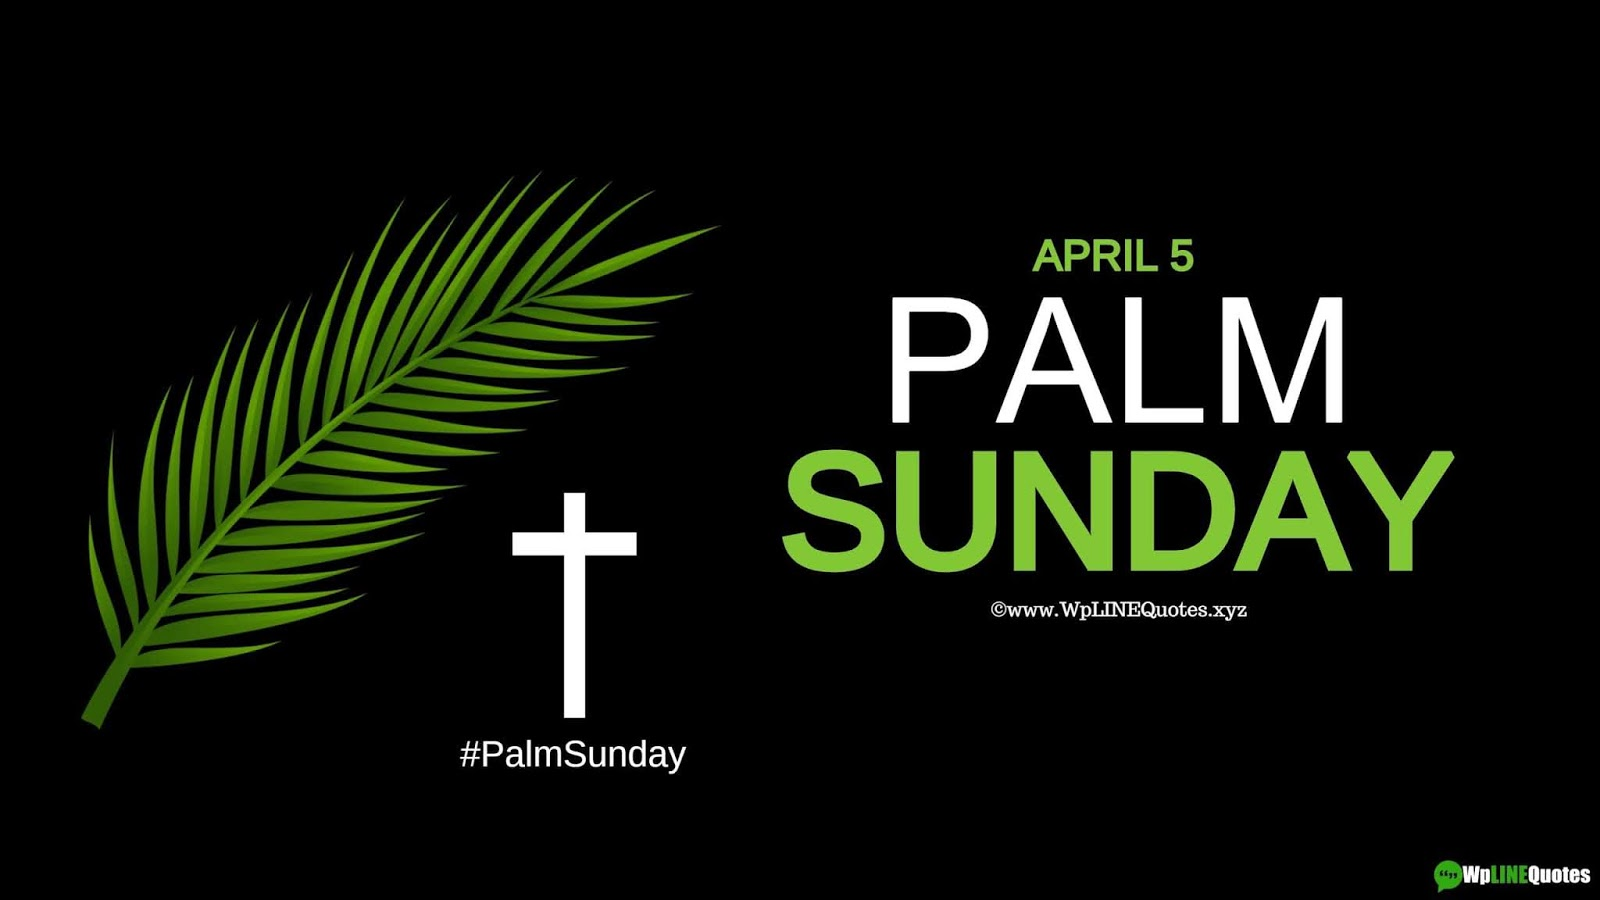 Palm Sunday Quotes, Wishes, Message, Greetings, Meaning, History, Facts,  Images, Wallpaper